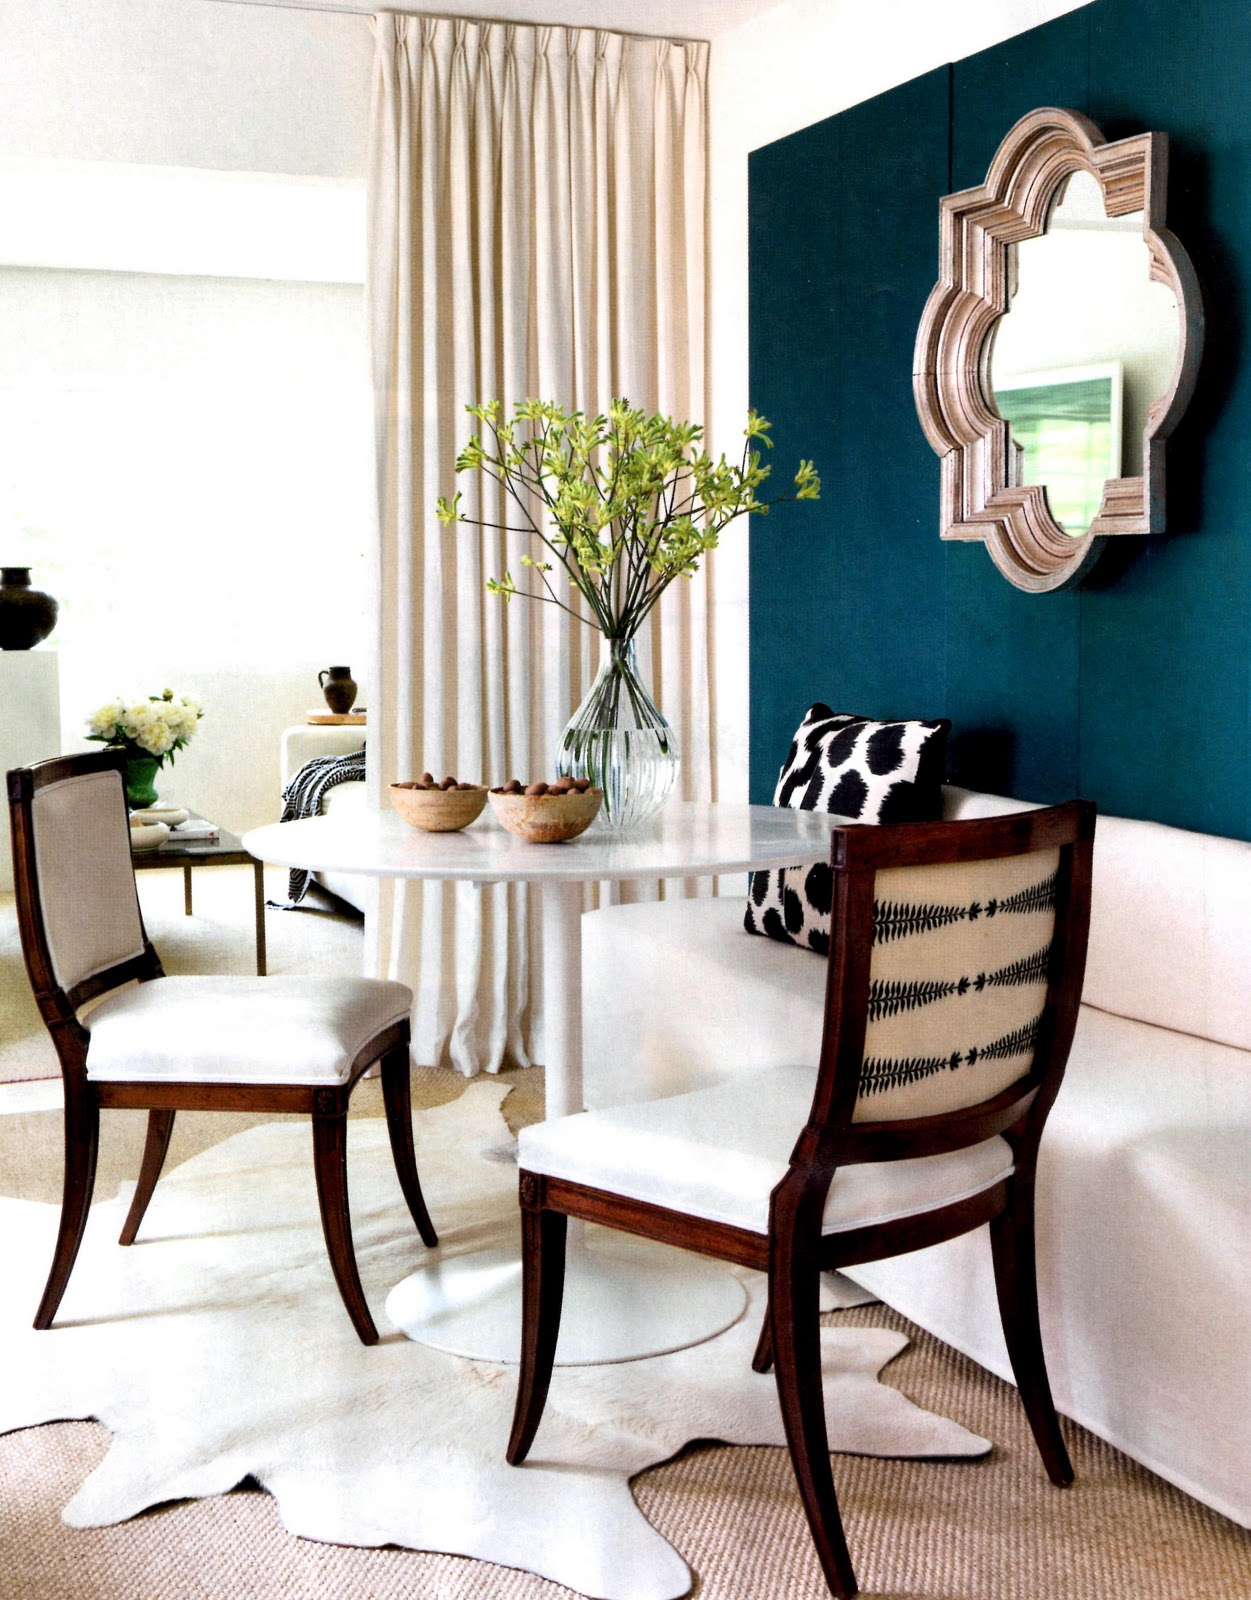 50 Stunning Breakfast Nook Ideas For 2020